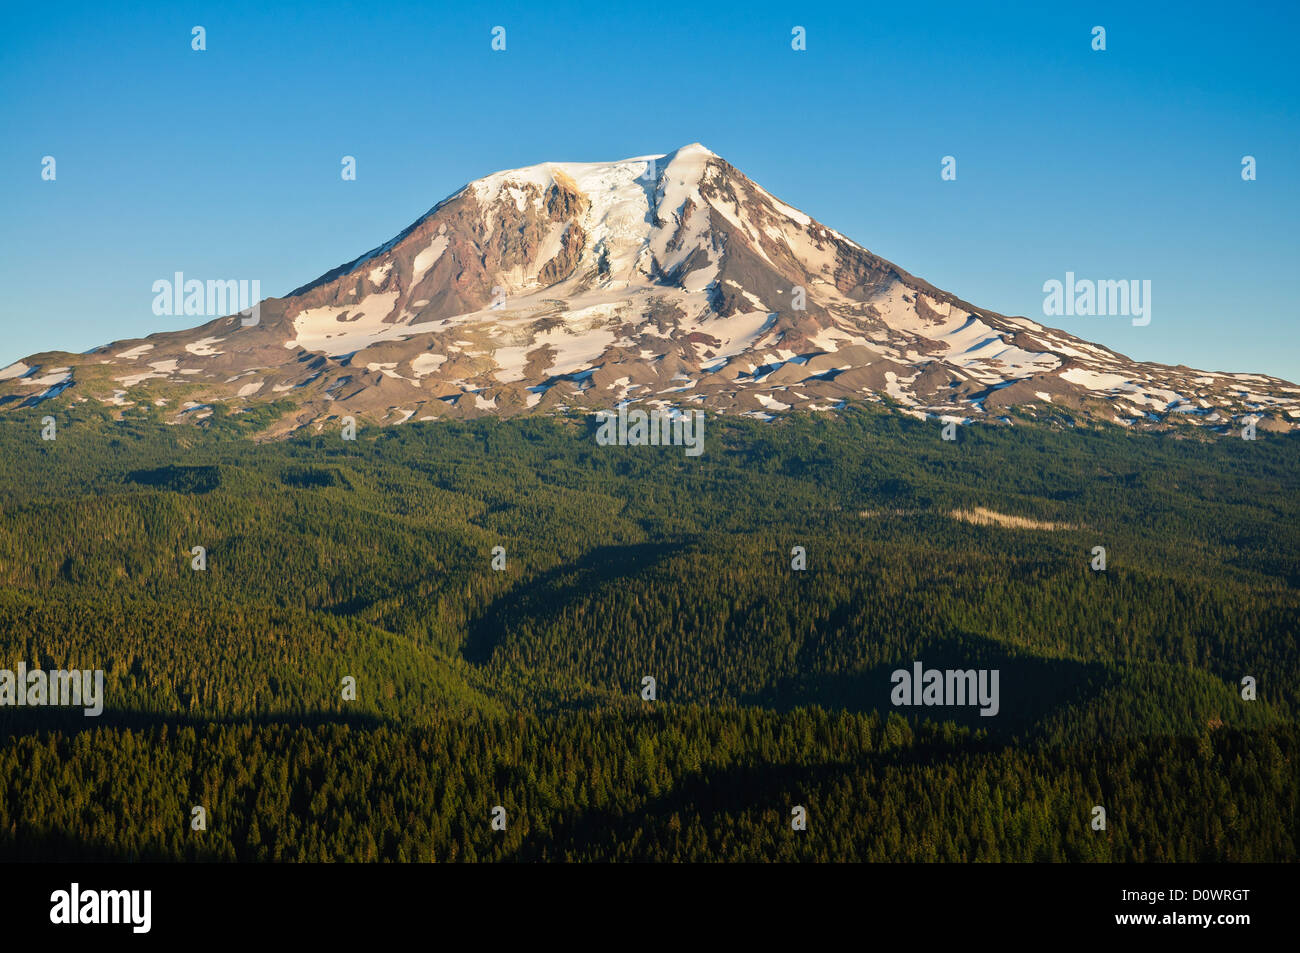 Mount Adams from Council Bluff, Gifford Pinchot National Forest, Washington. - Stock Image